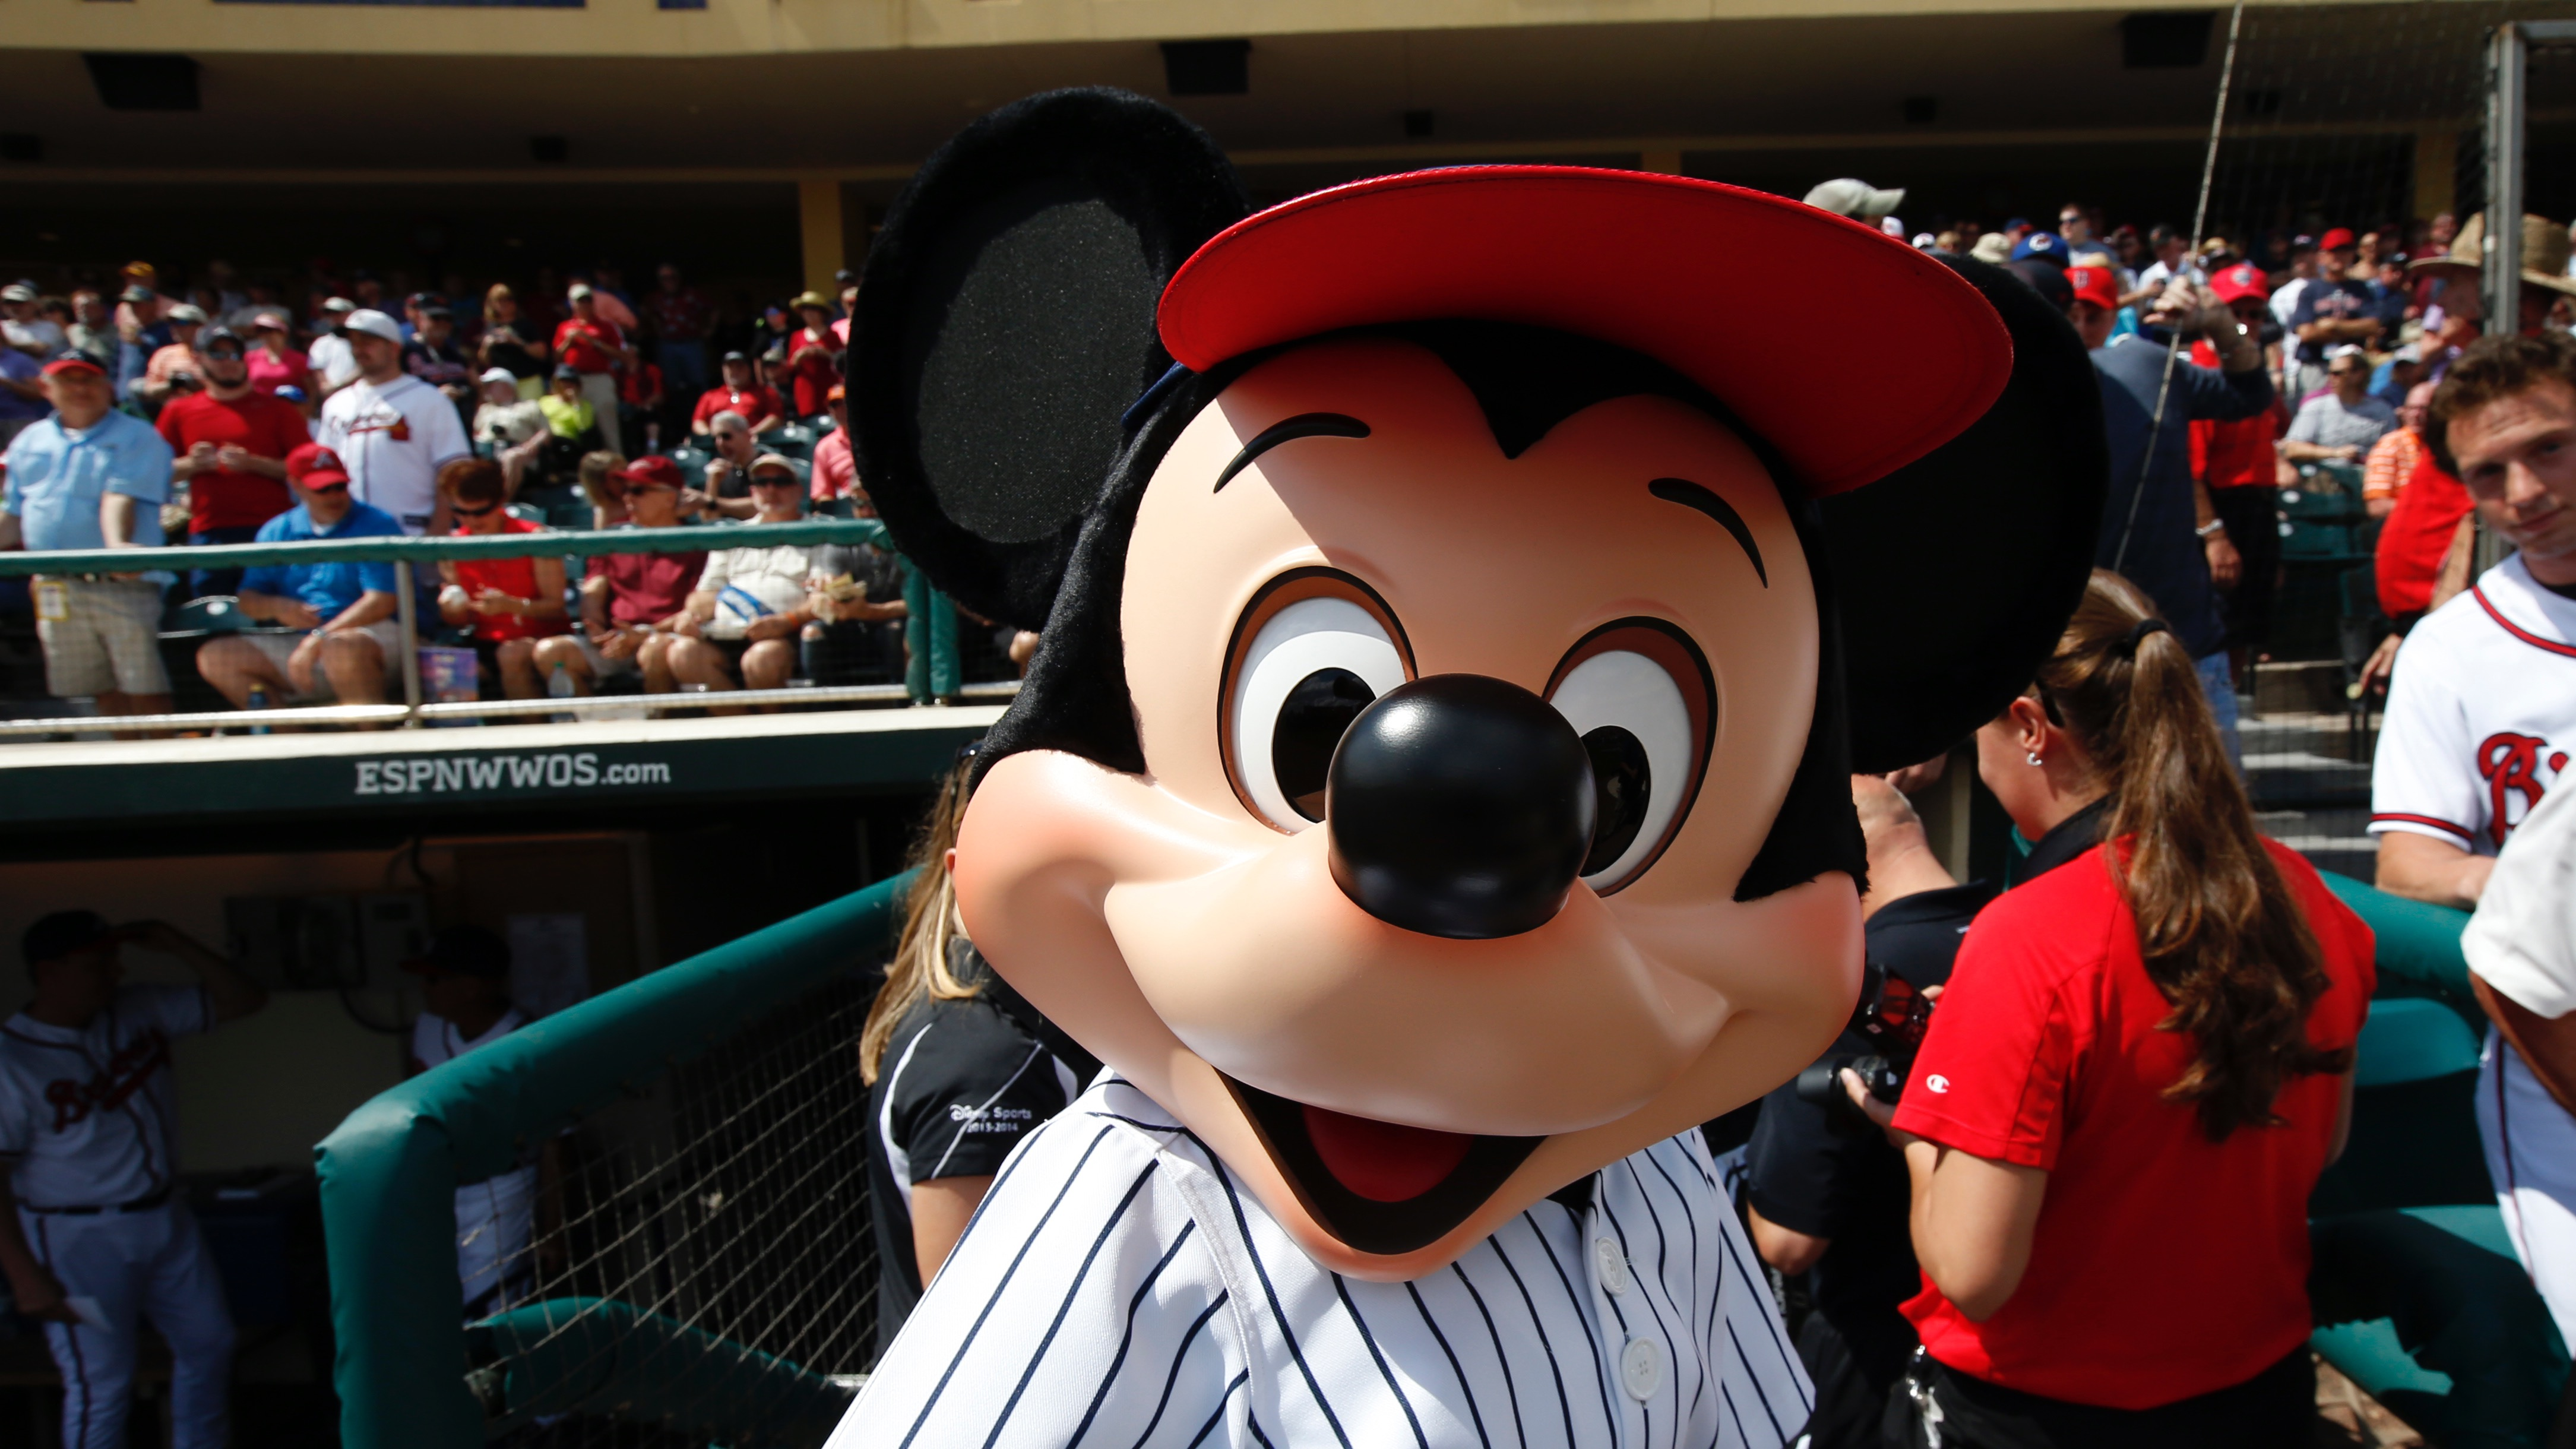 Mickey Mouse wears pinstripes before a spring exhibition baseball game between the Washington Nationals and the Atlanta Braves, Tuesday, March 4, 2014, in Kissimmee, Fla. (AP Photo/Alex Brandon)